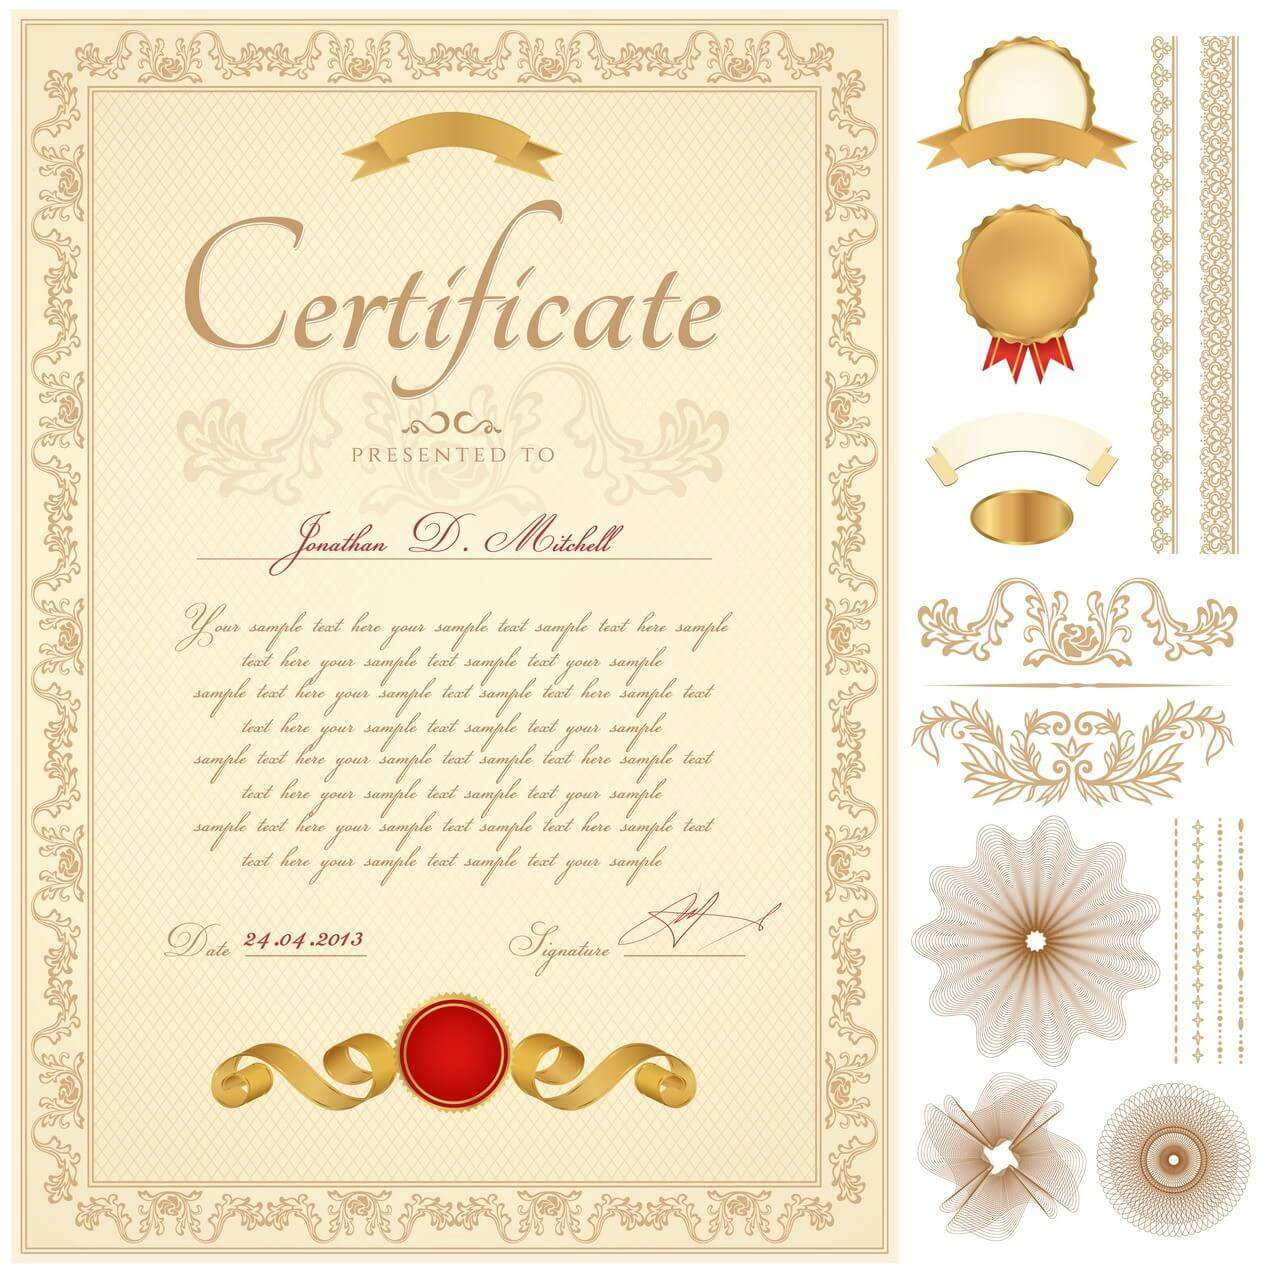 Certificate Template 03 png